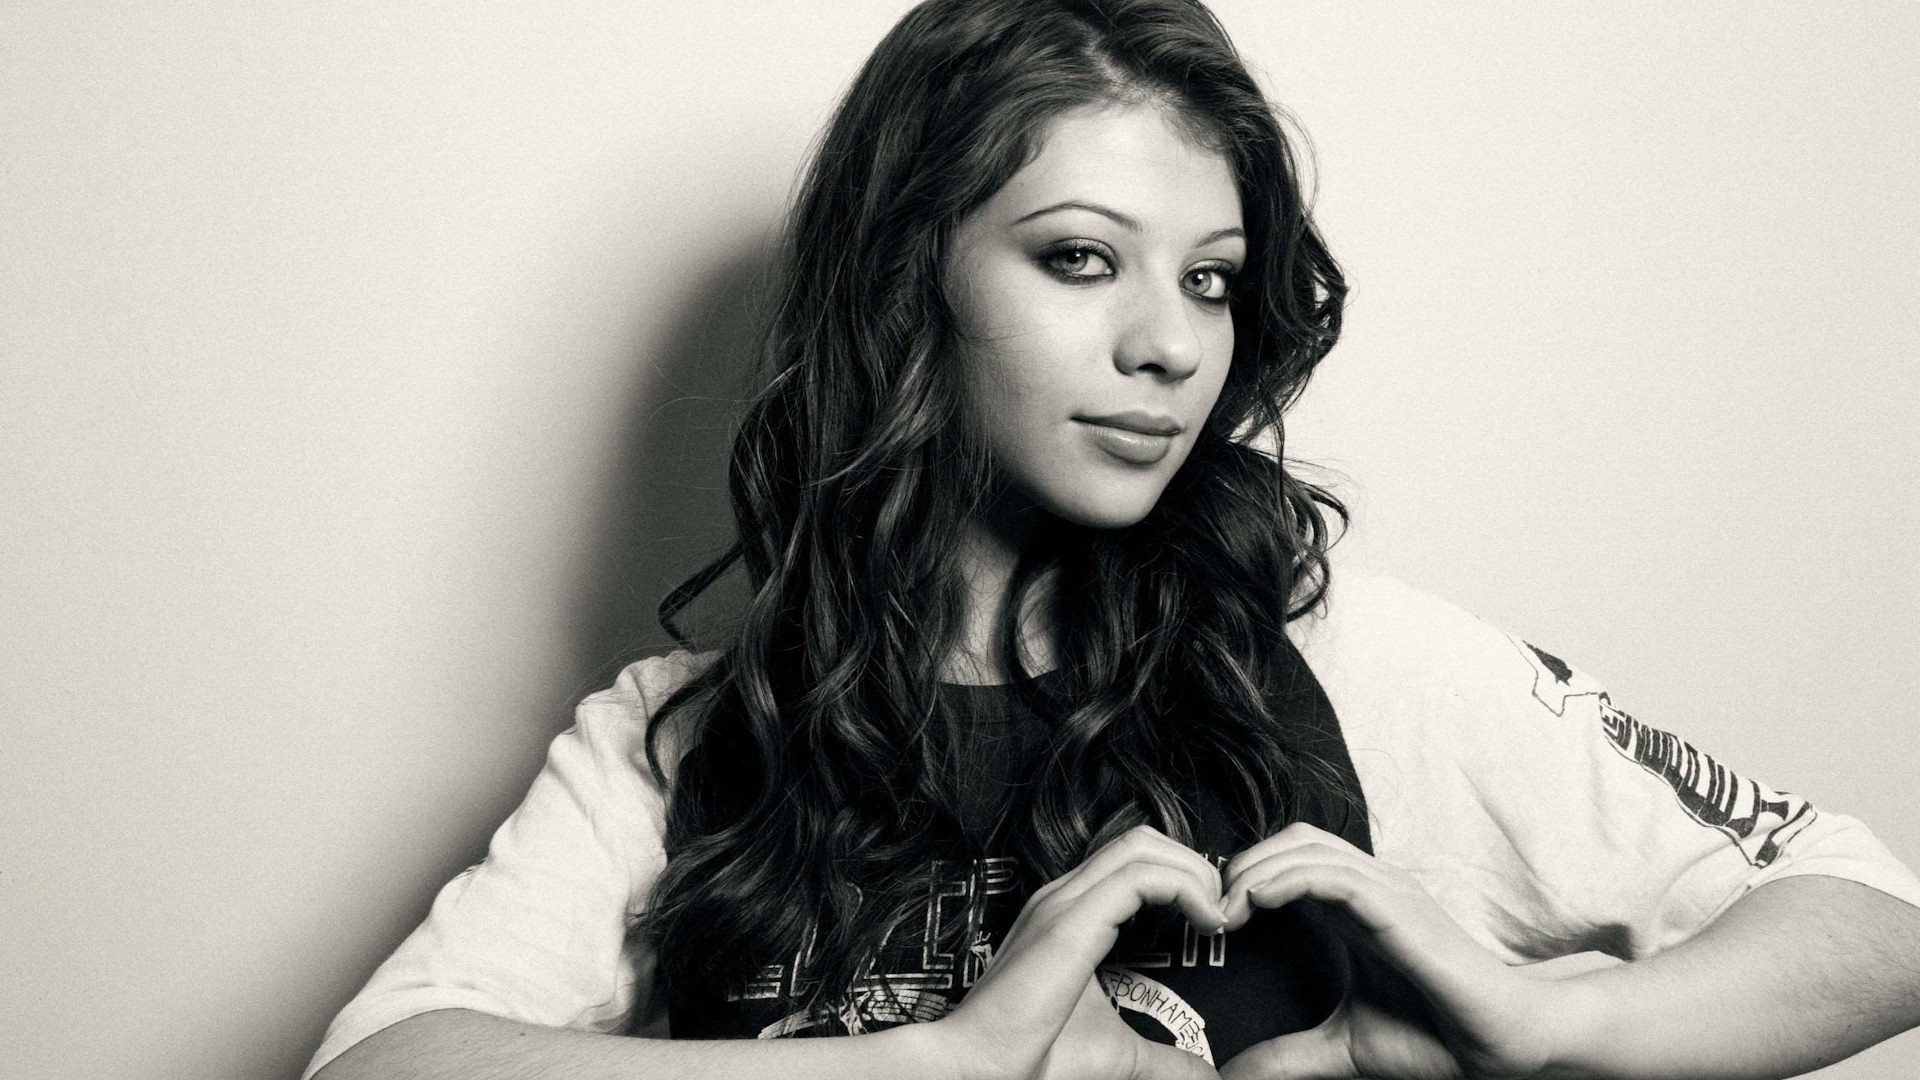 woman michelle trachtenberg monochrome HD Wallpaper